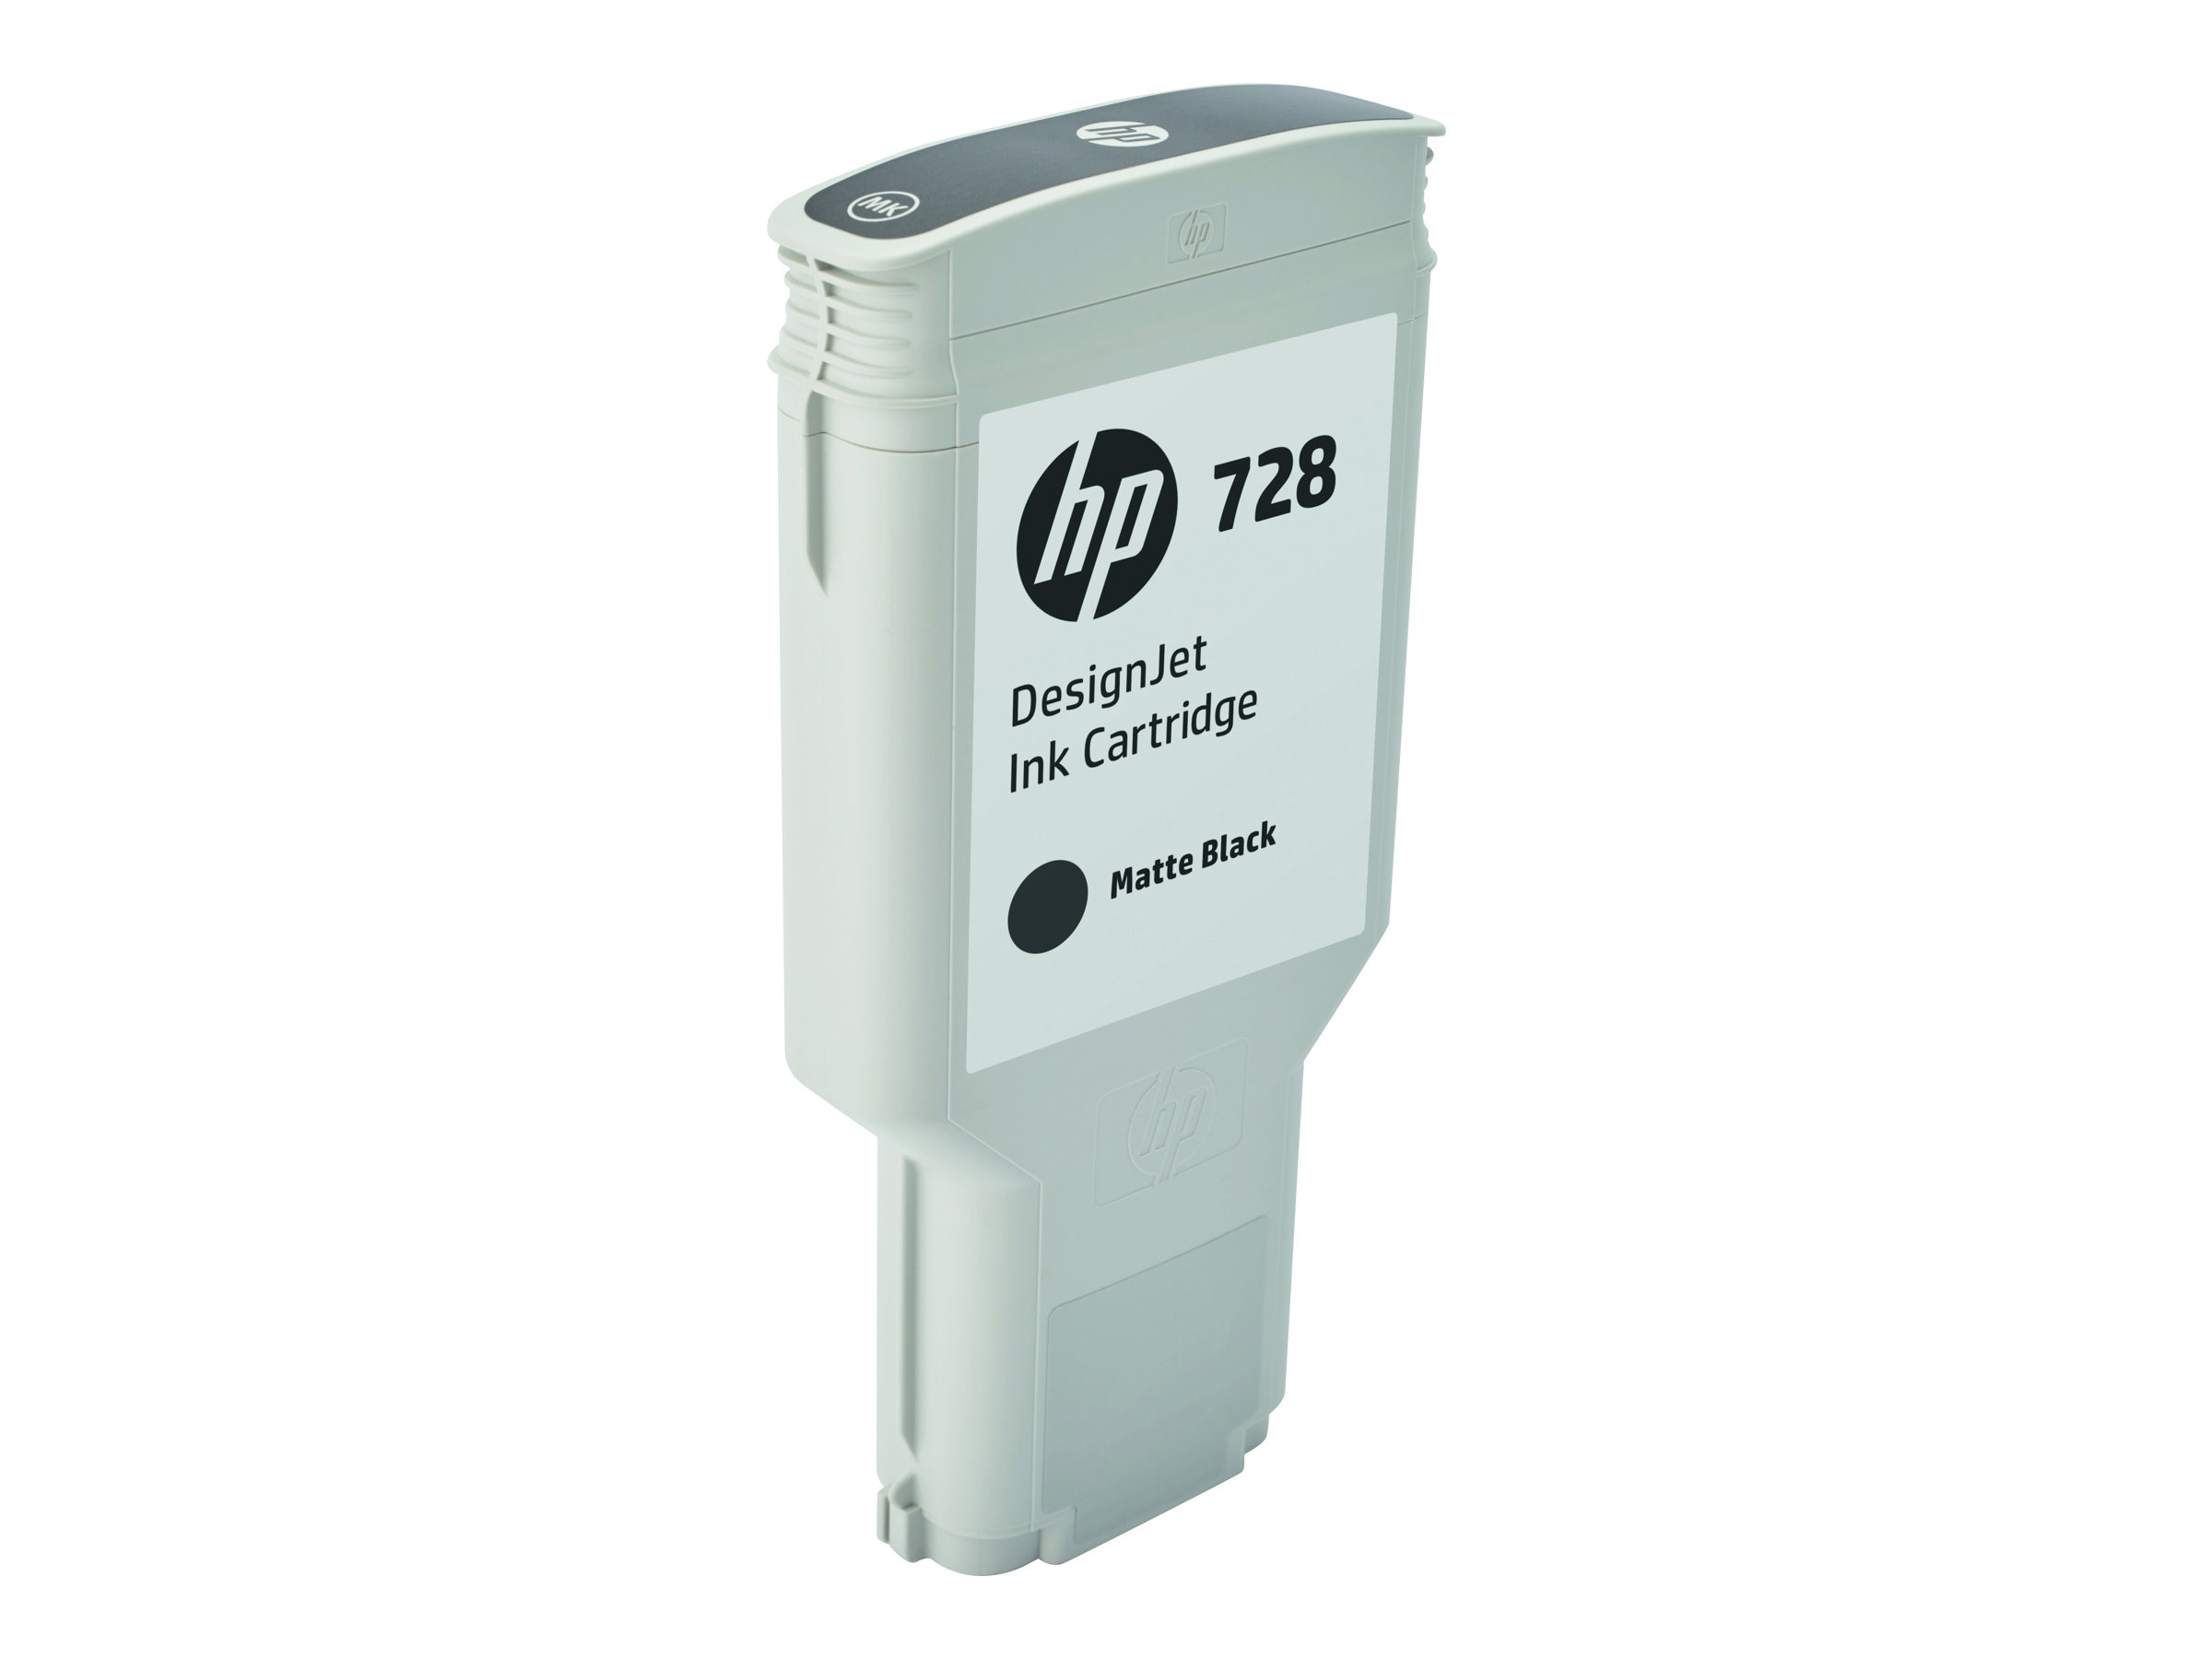 HP Inc. F9J68A Image 1